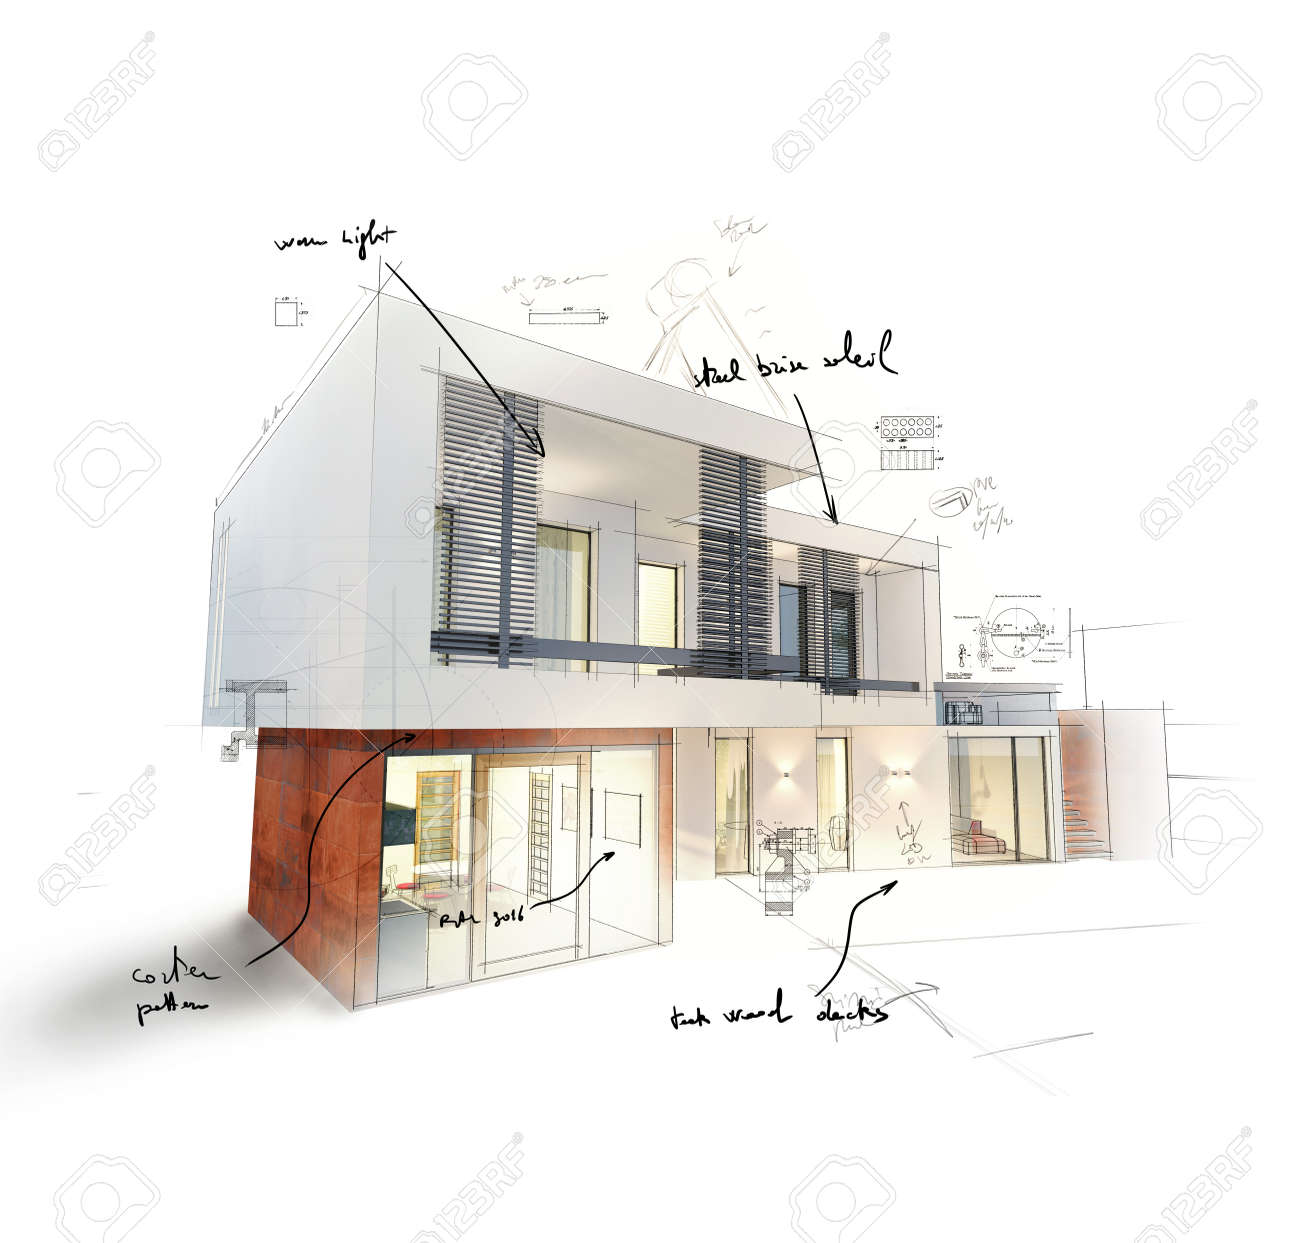 Project of a house in 3d sketch - 51005188